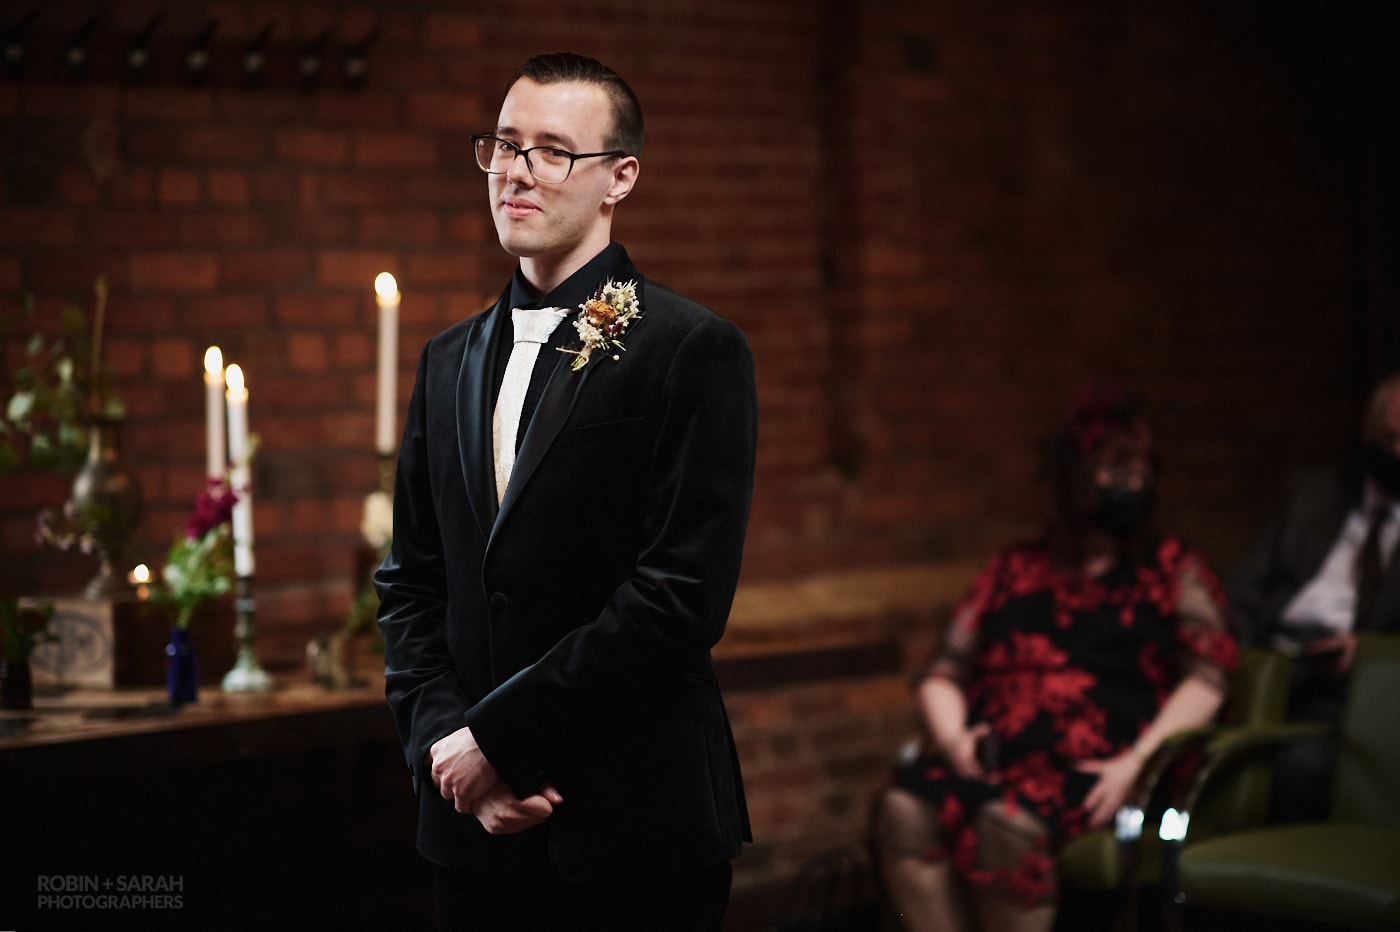 Groom waits for bride to arrive